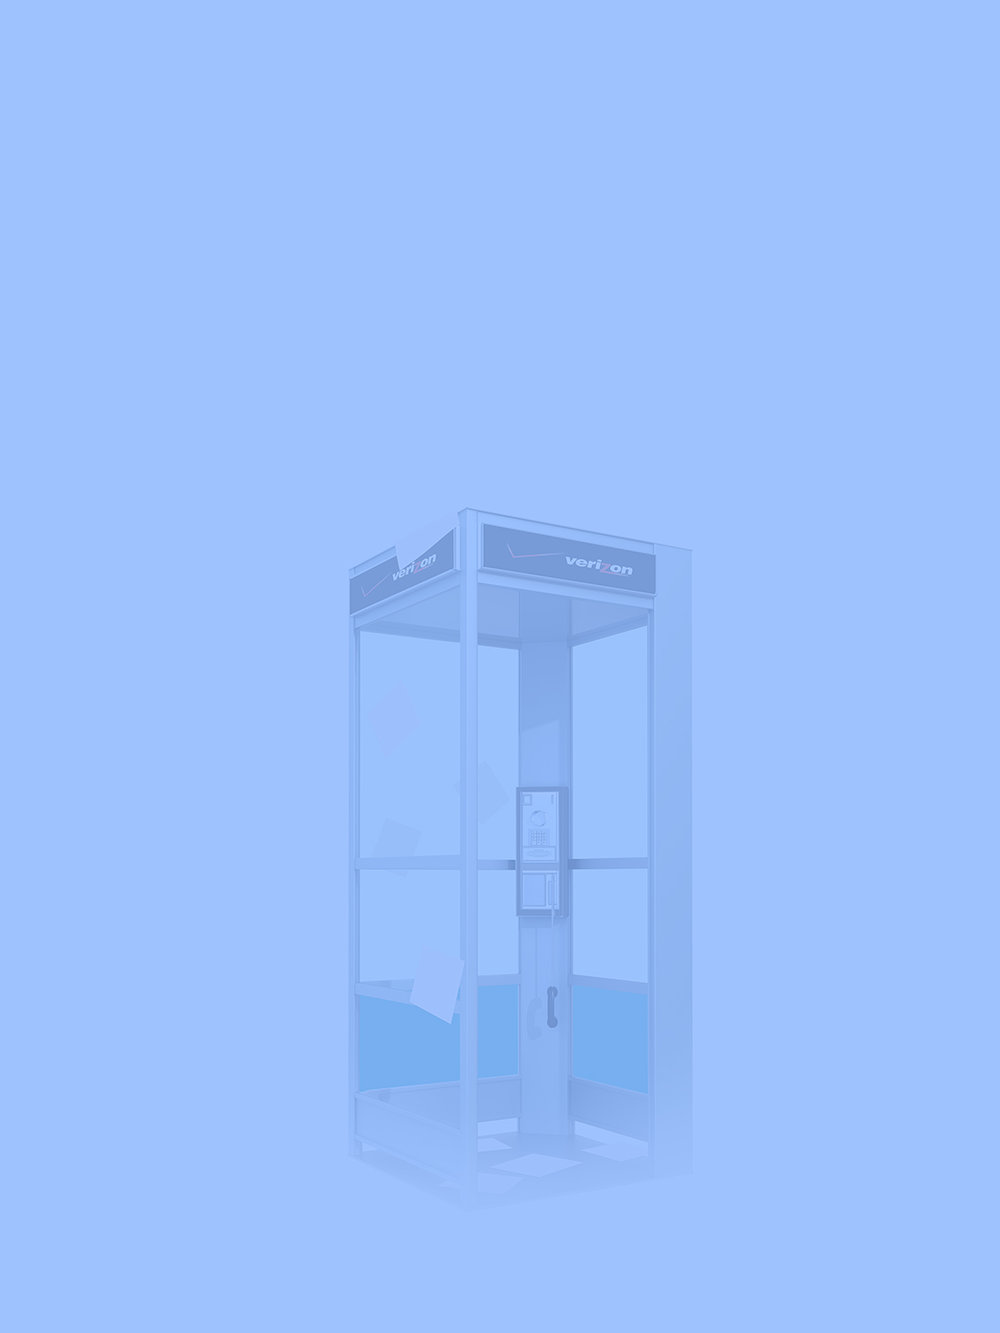 Phone Booth, 2012